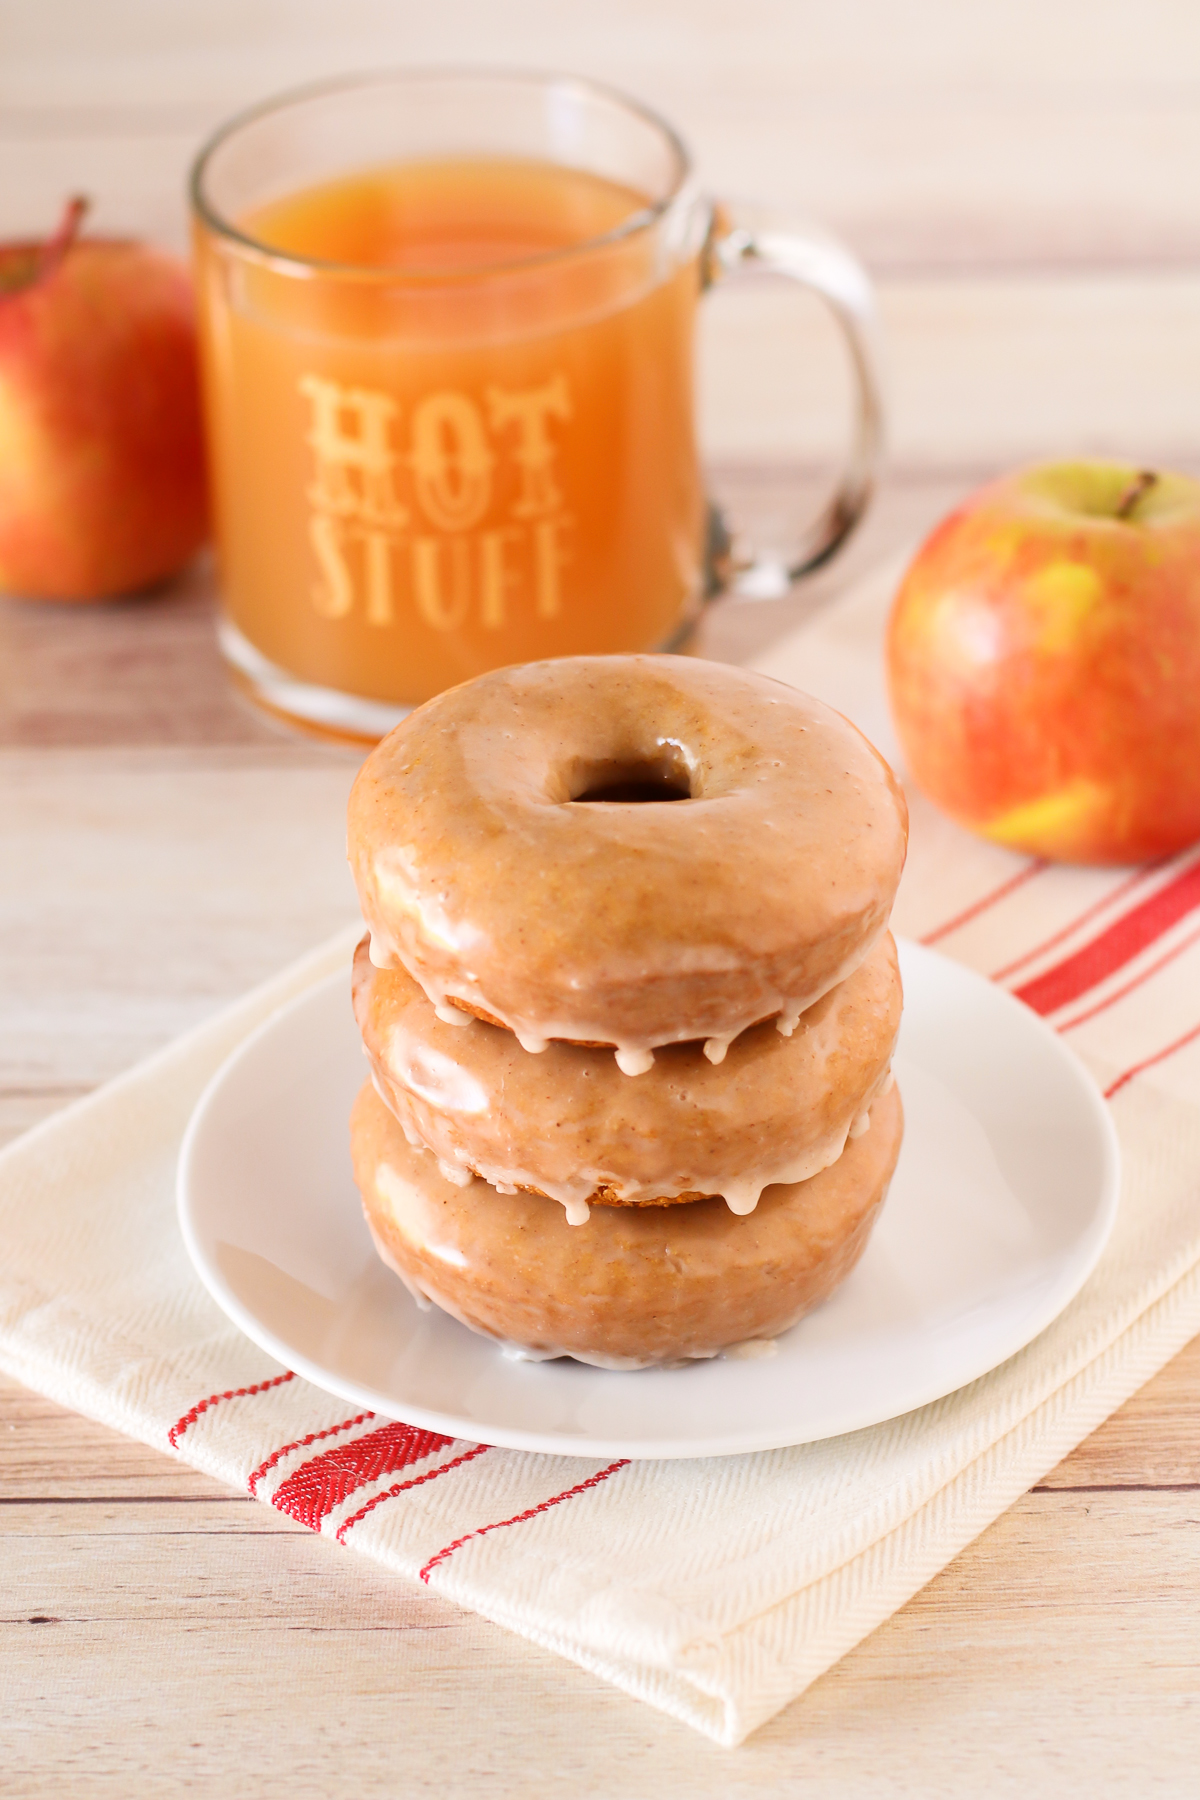 Gluten Free Vegan Baked Apple Cider Donuts. Warm, cake-like apple cider donuts with a simple cinnamon glaze. This recipe is fall-tastic!